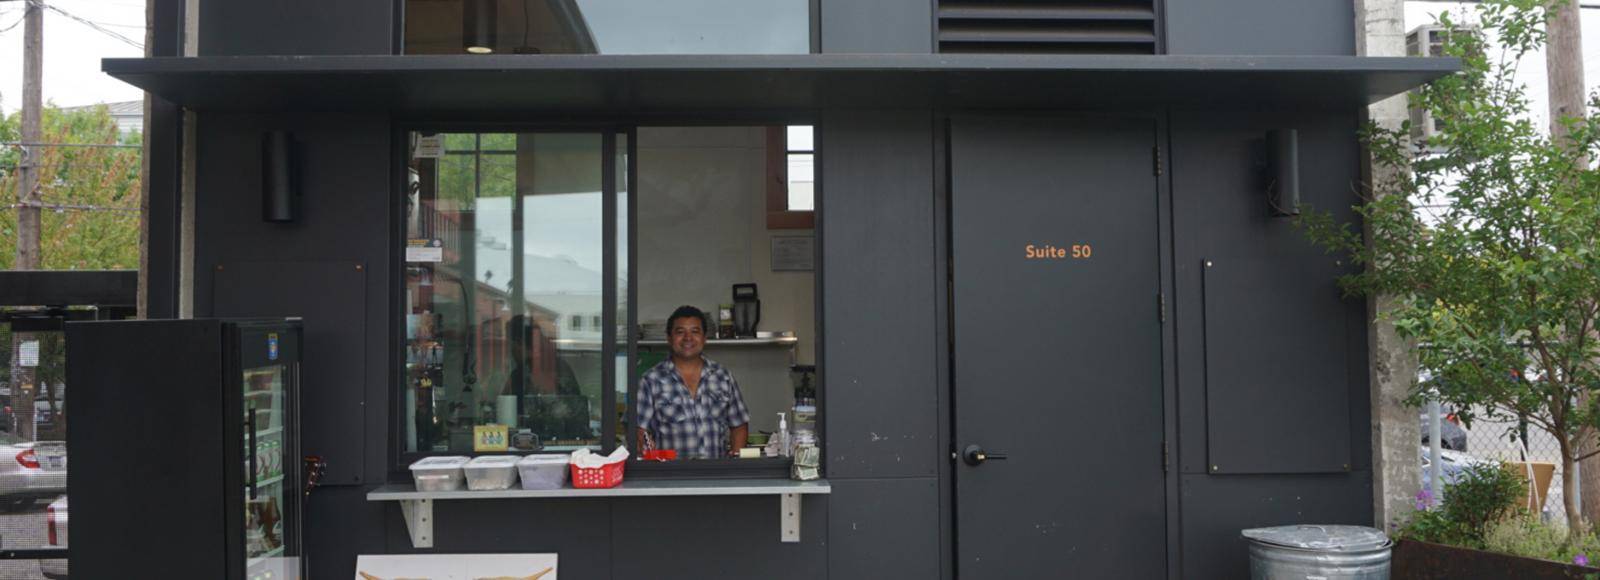 A smiling man stands behind the counter of a small cafe.